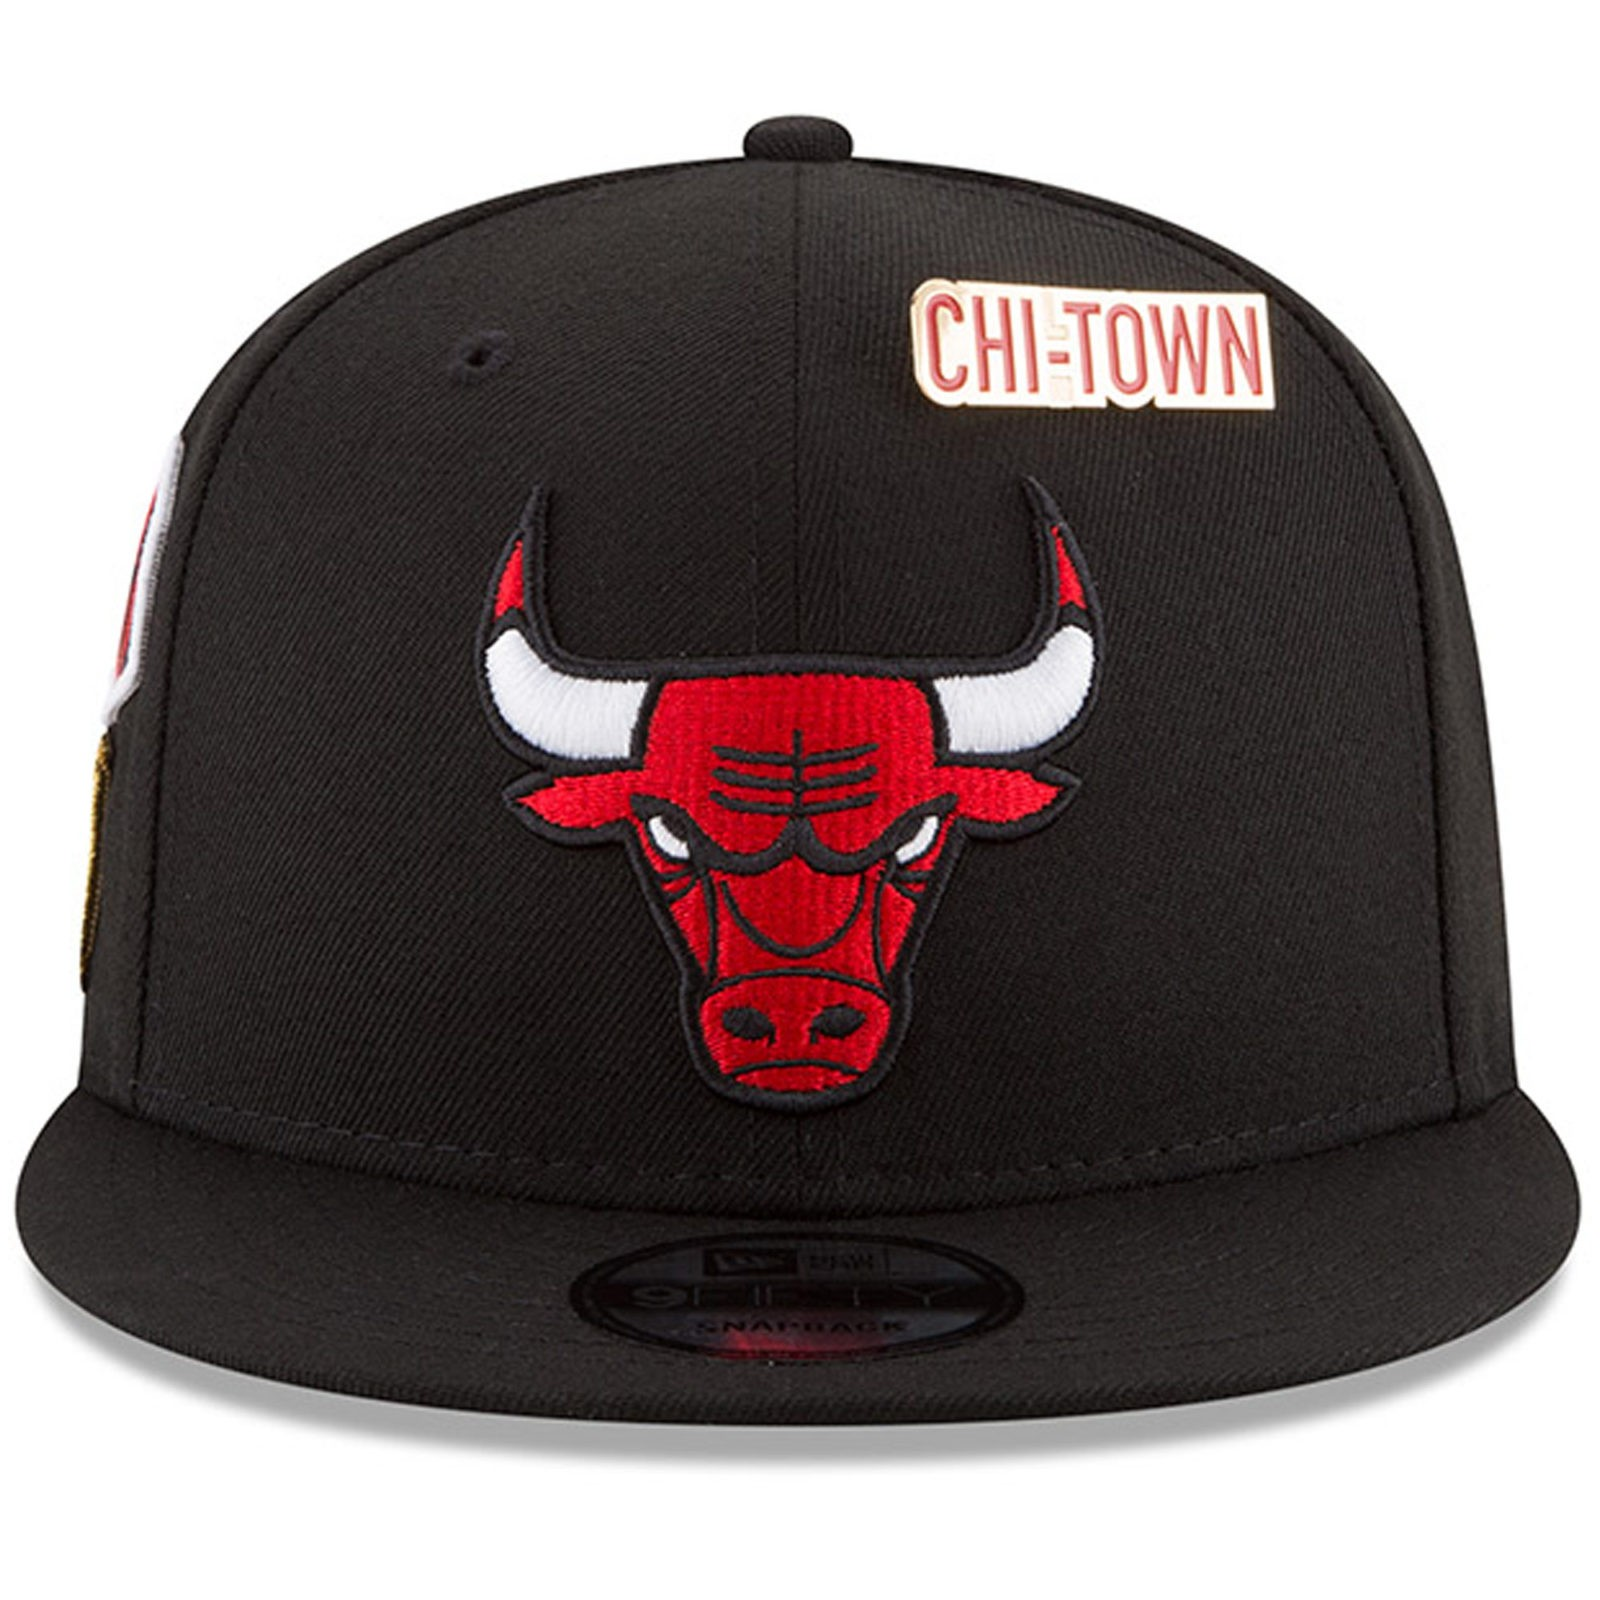 393e006eb01 Chicago Bulls New Era 2018 Draft 9FIFTY Snapback Adjustable Hat – Black